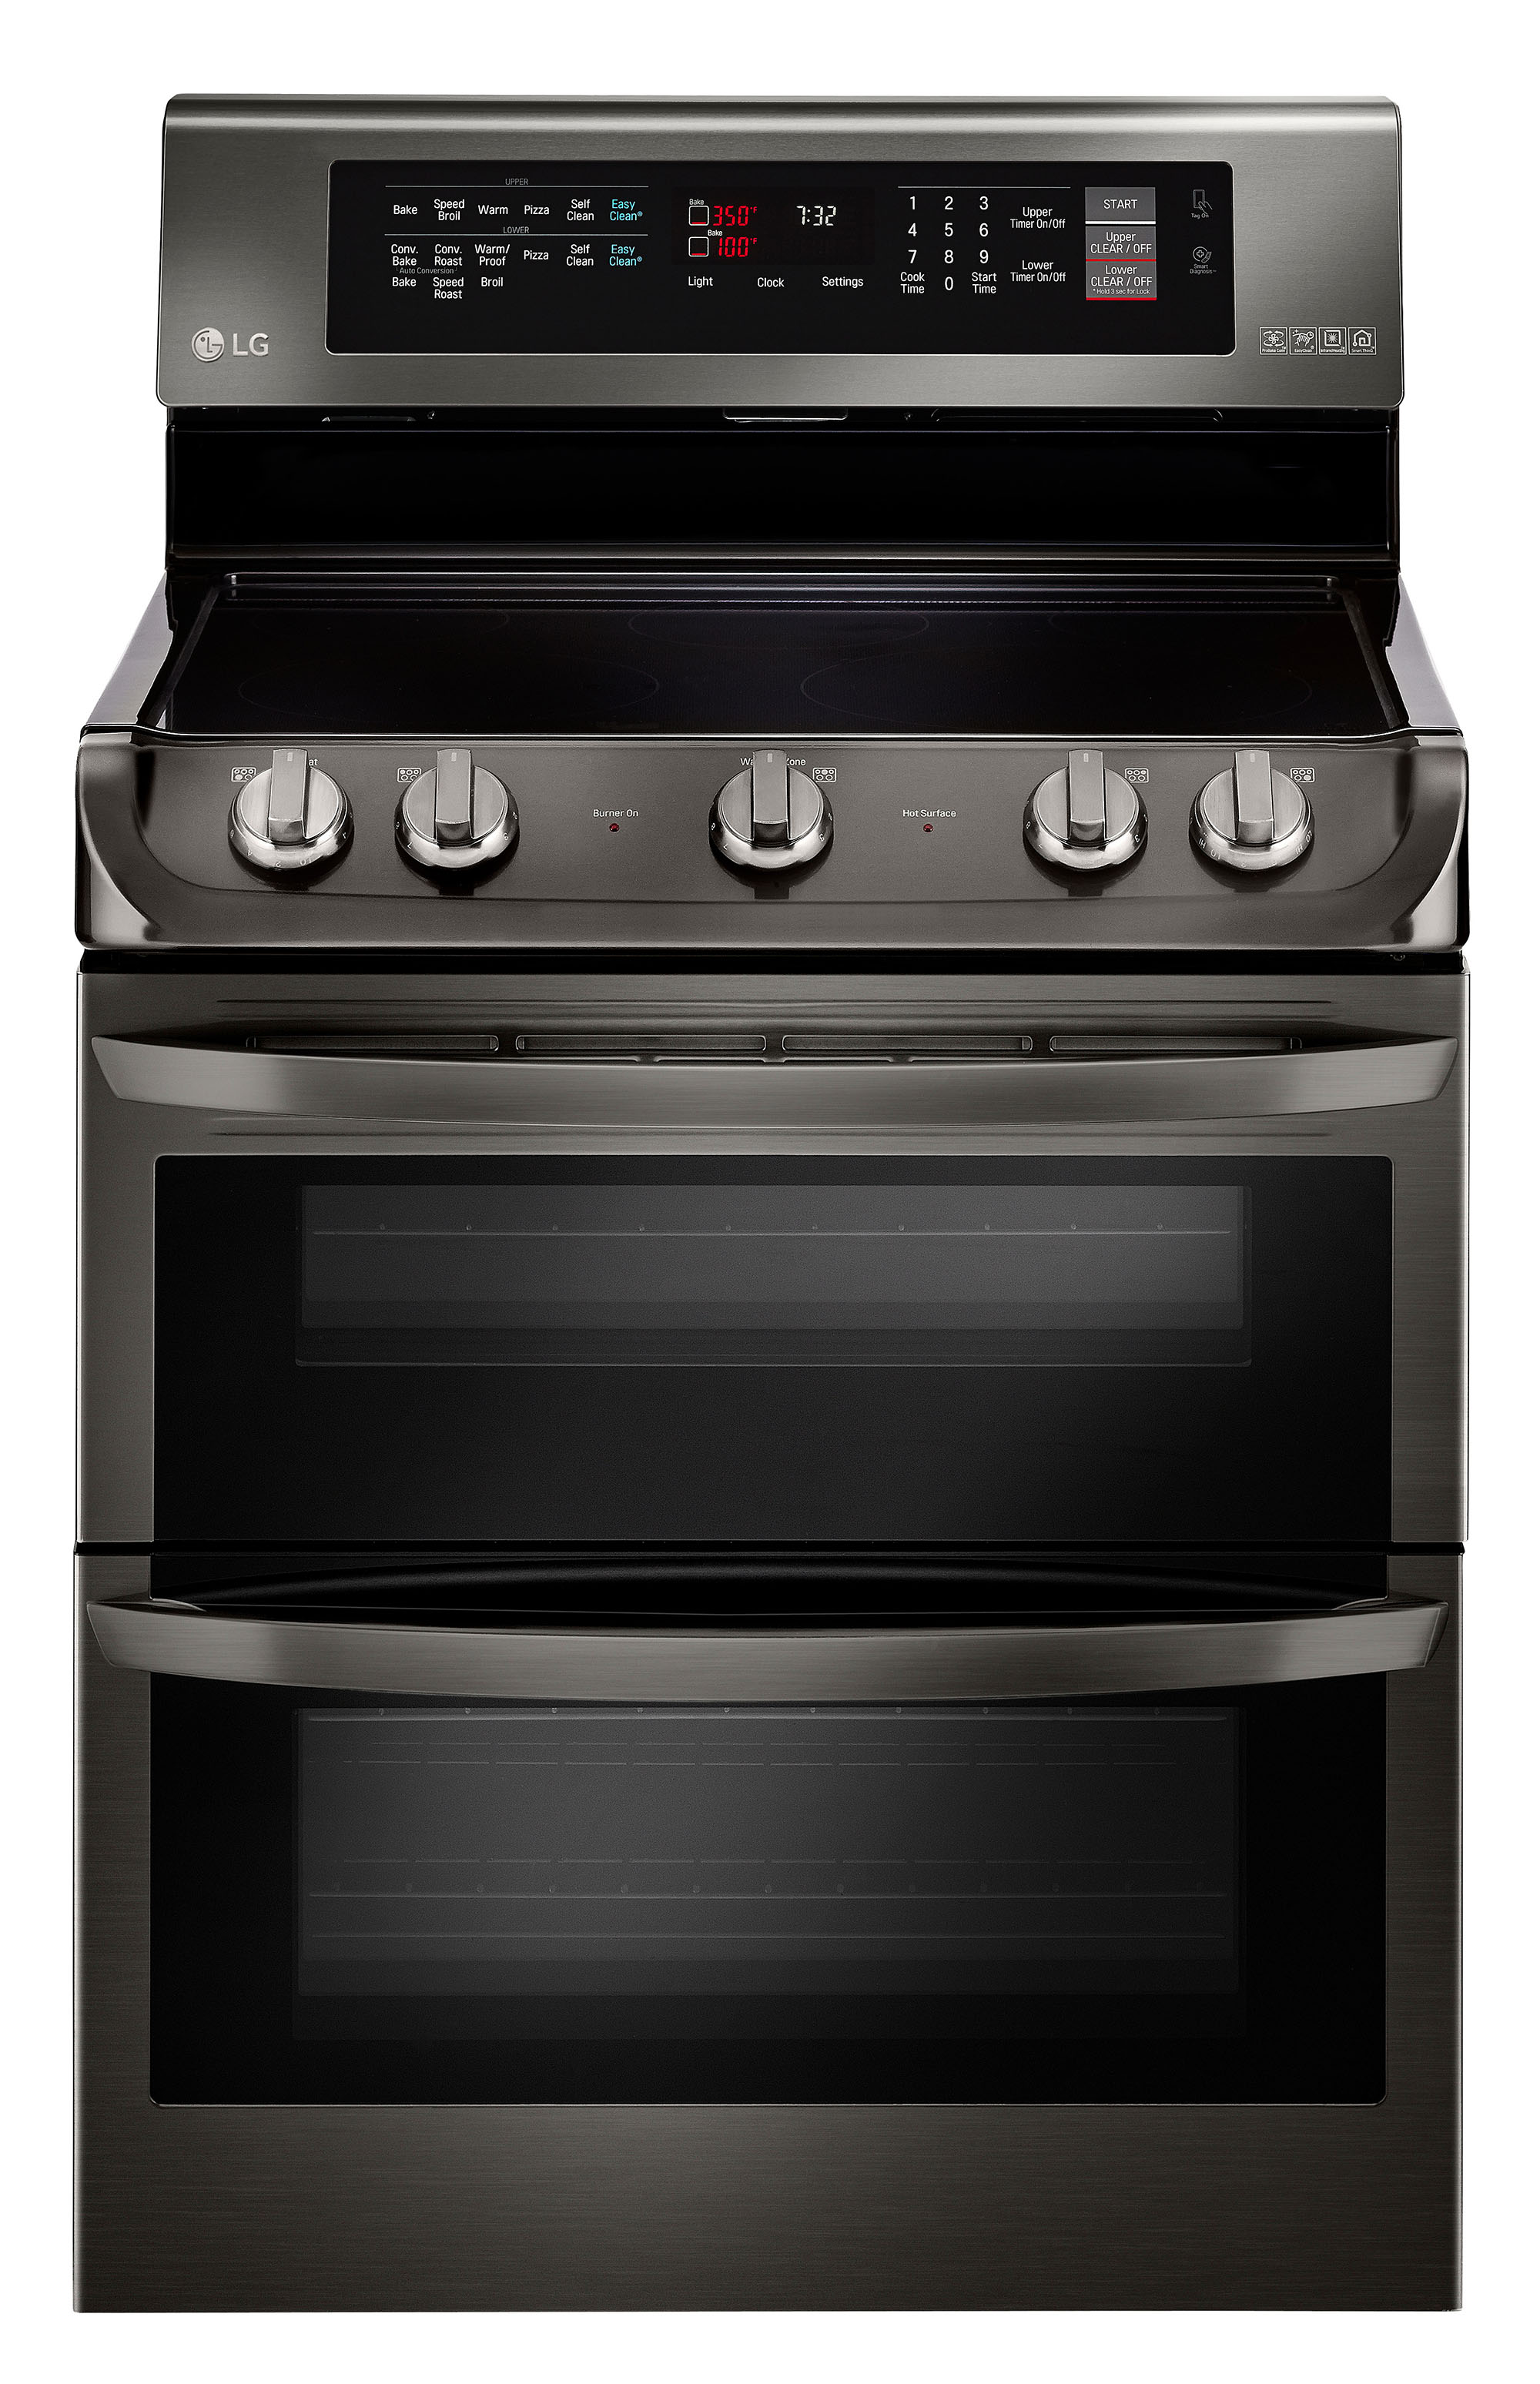 LG 7.3 Cu. Ft. Self-Cleaning Freestanding Double Oven Electric Convection Range Black Stainless Steel LDE4415BD